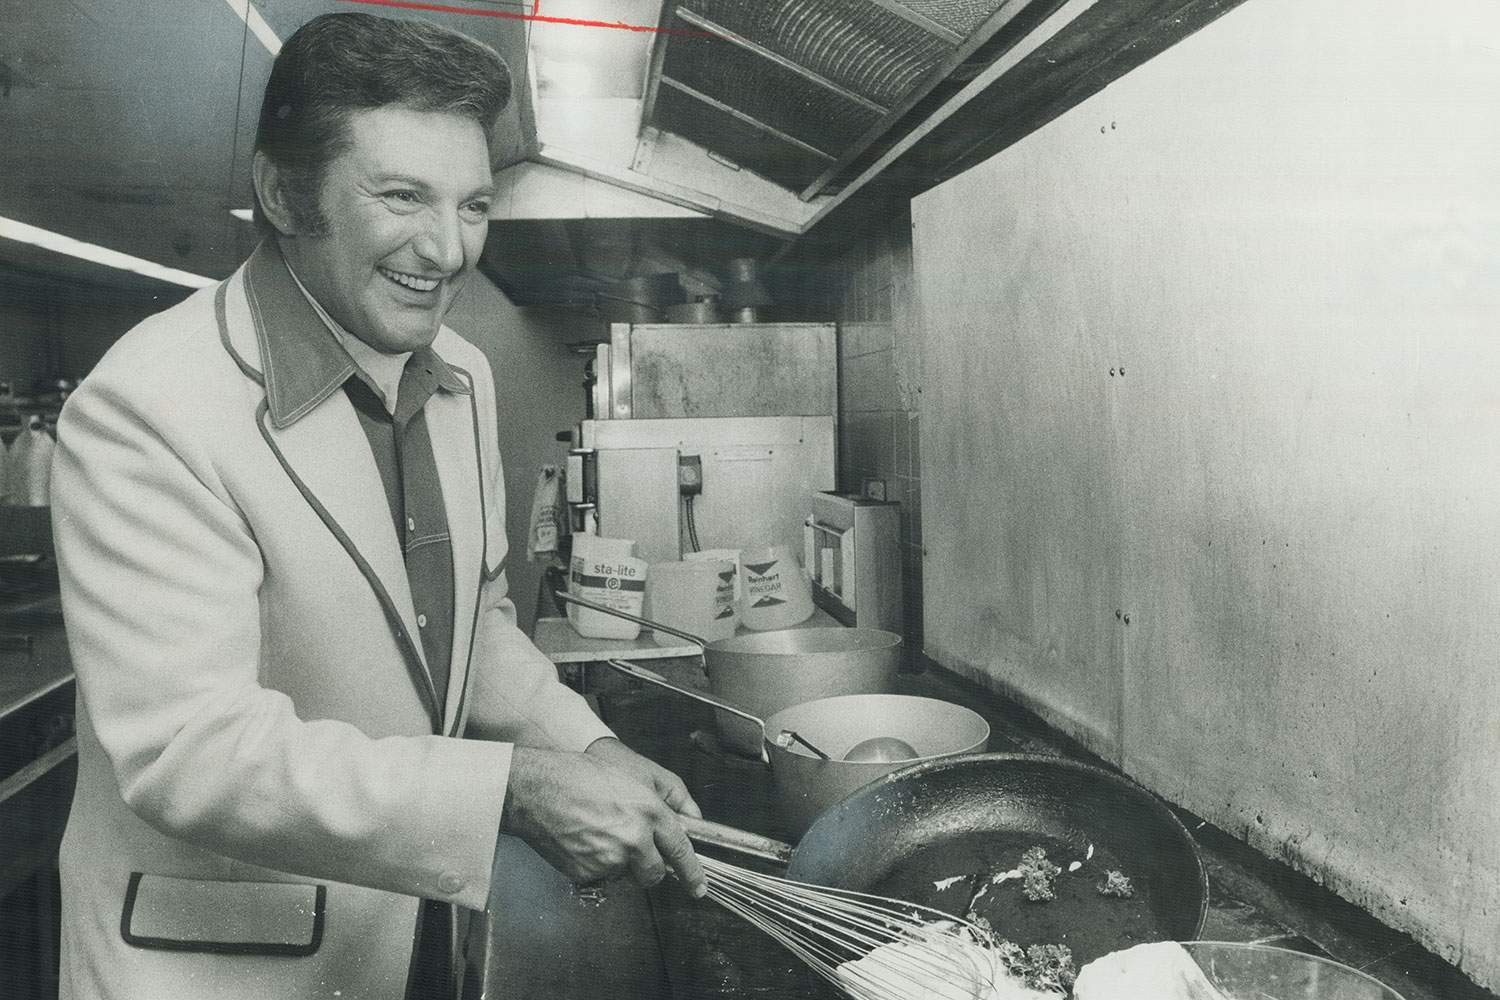 EC:  assets%2Fmessage-editor%2F1469068458138-liberace-cooking-inline-getty